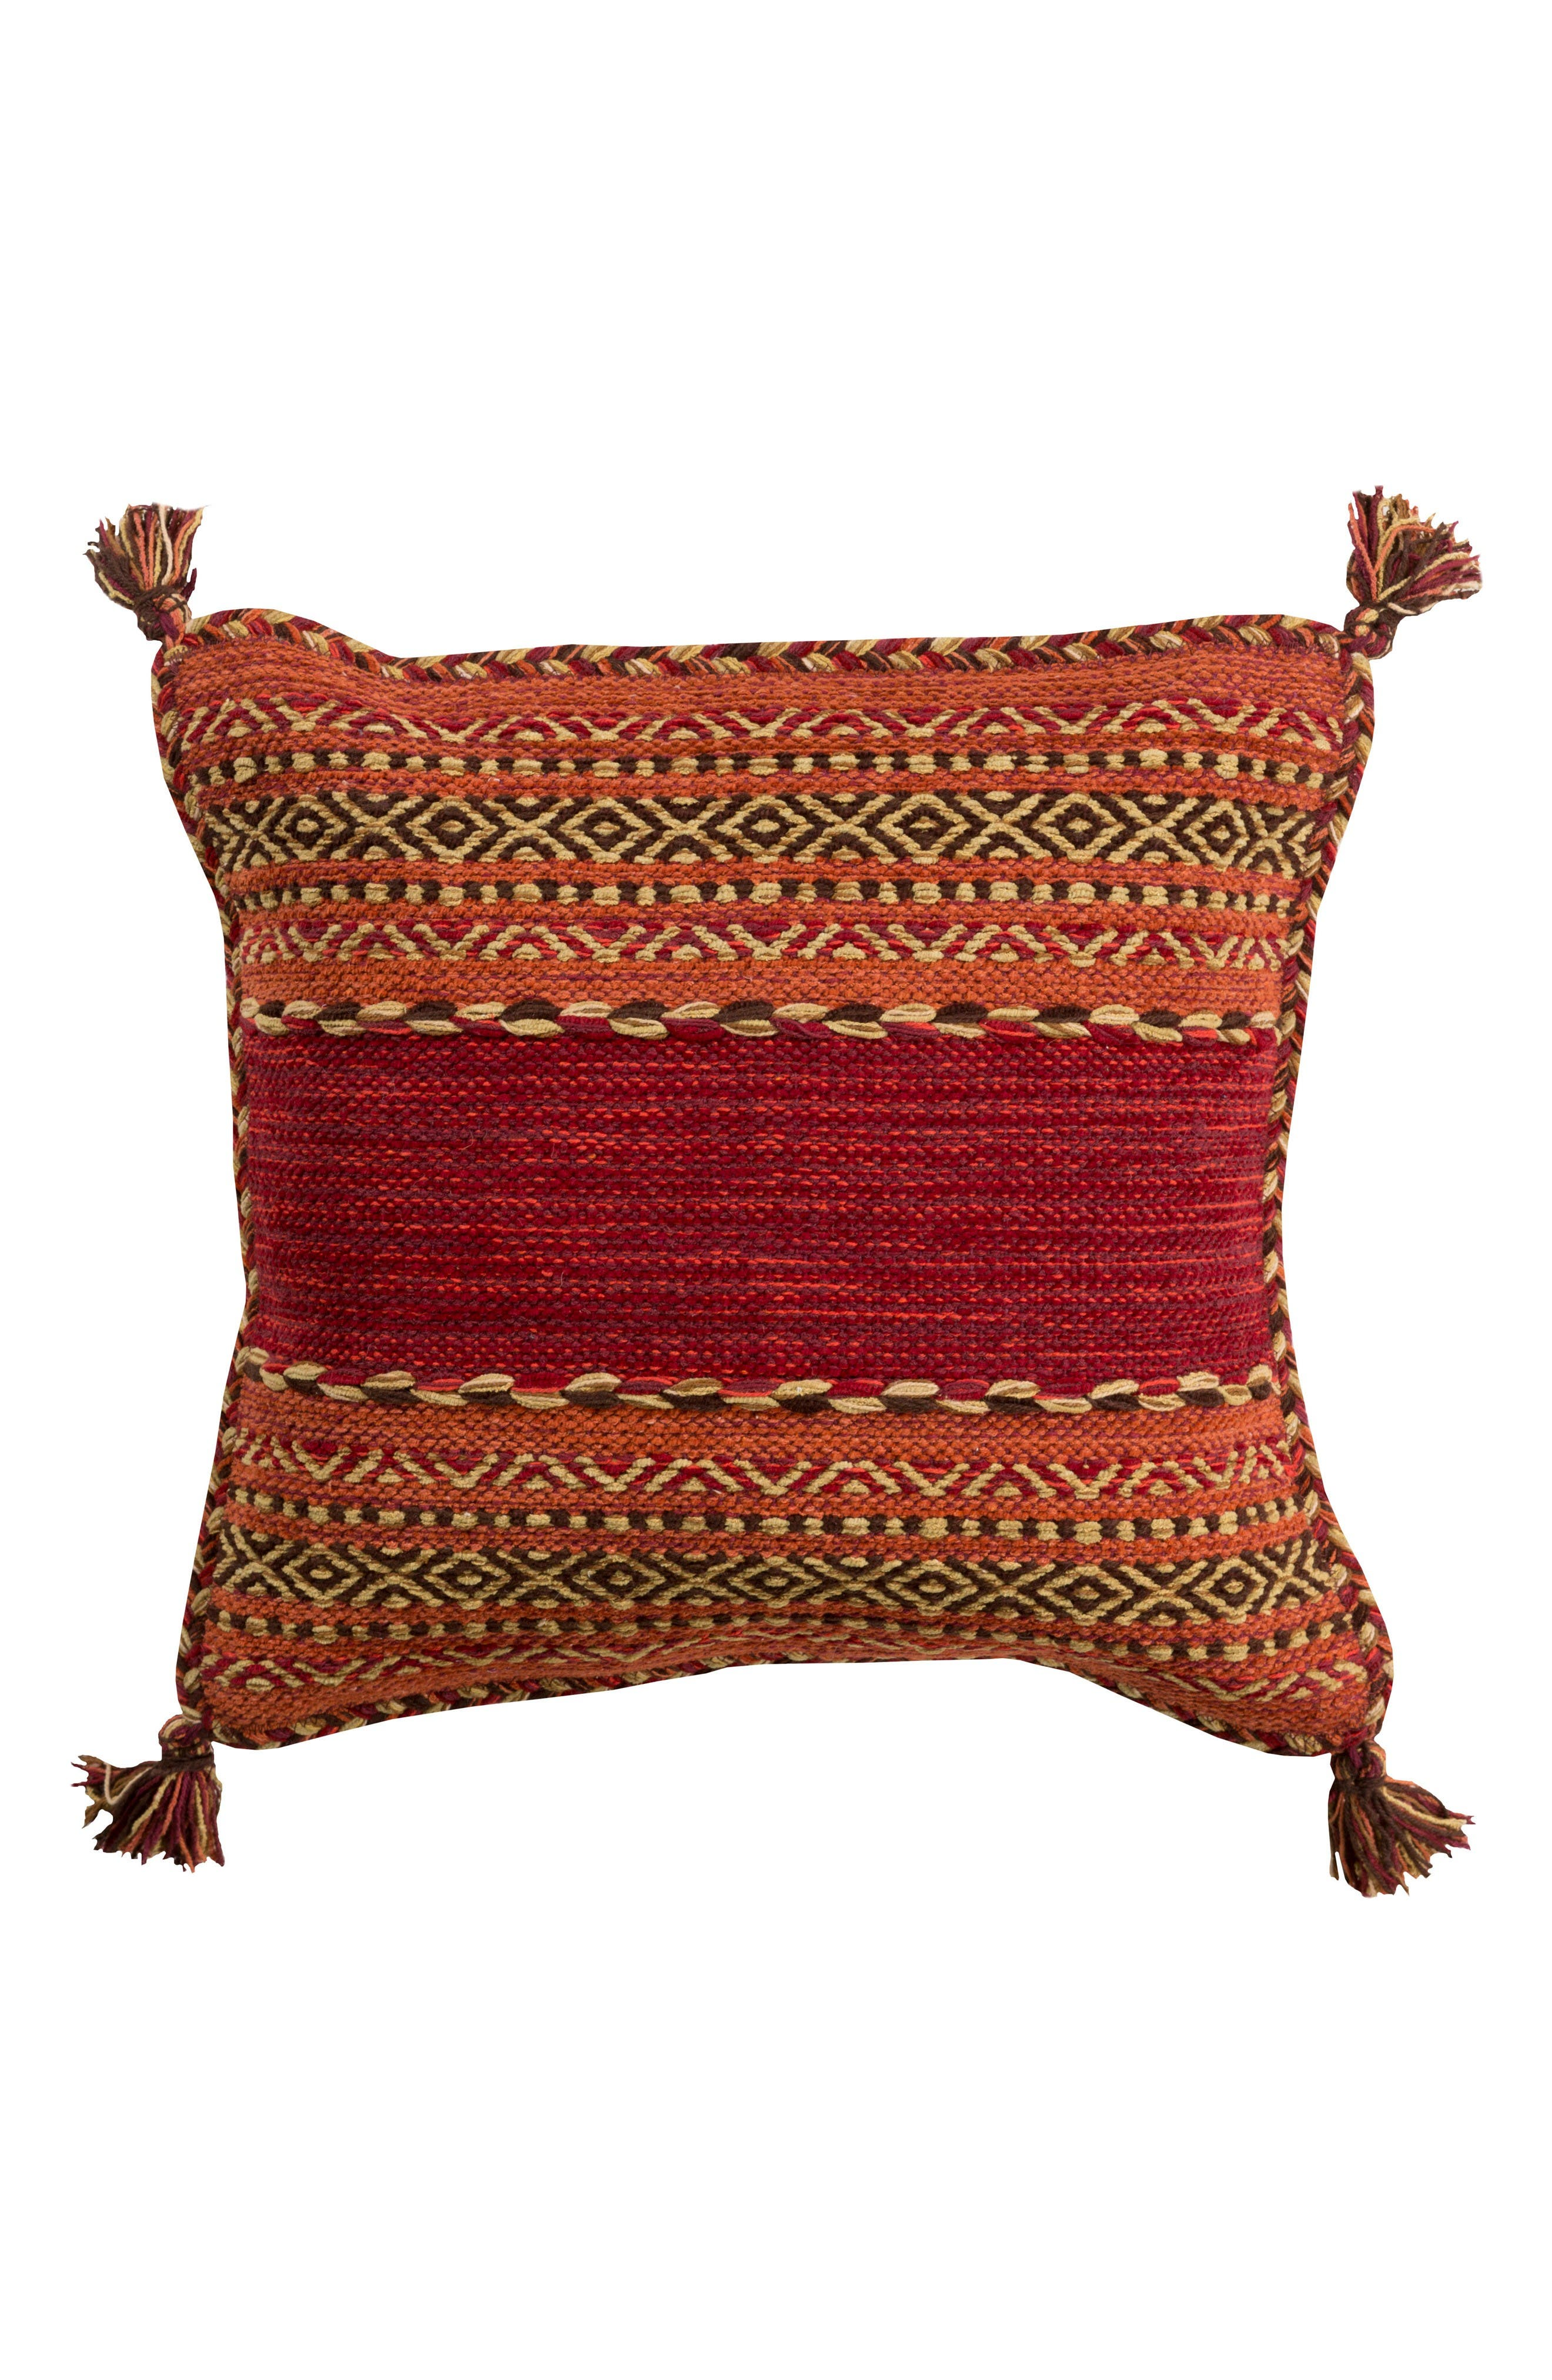 Etonnant Surya Home Trenza Pillow